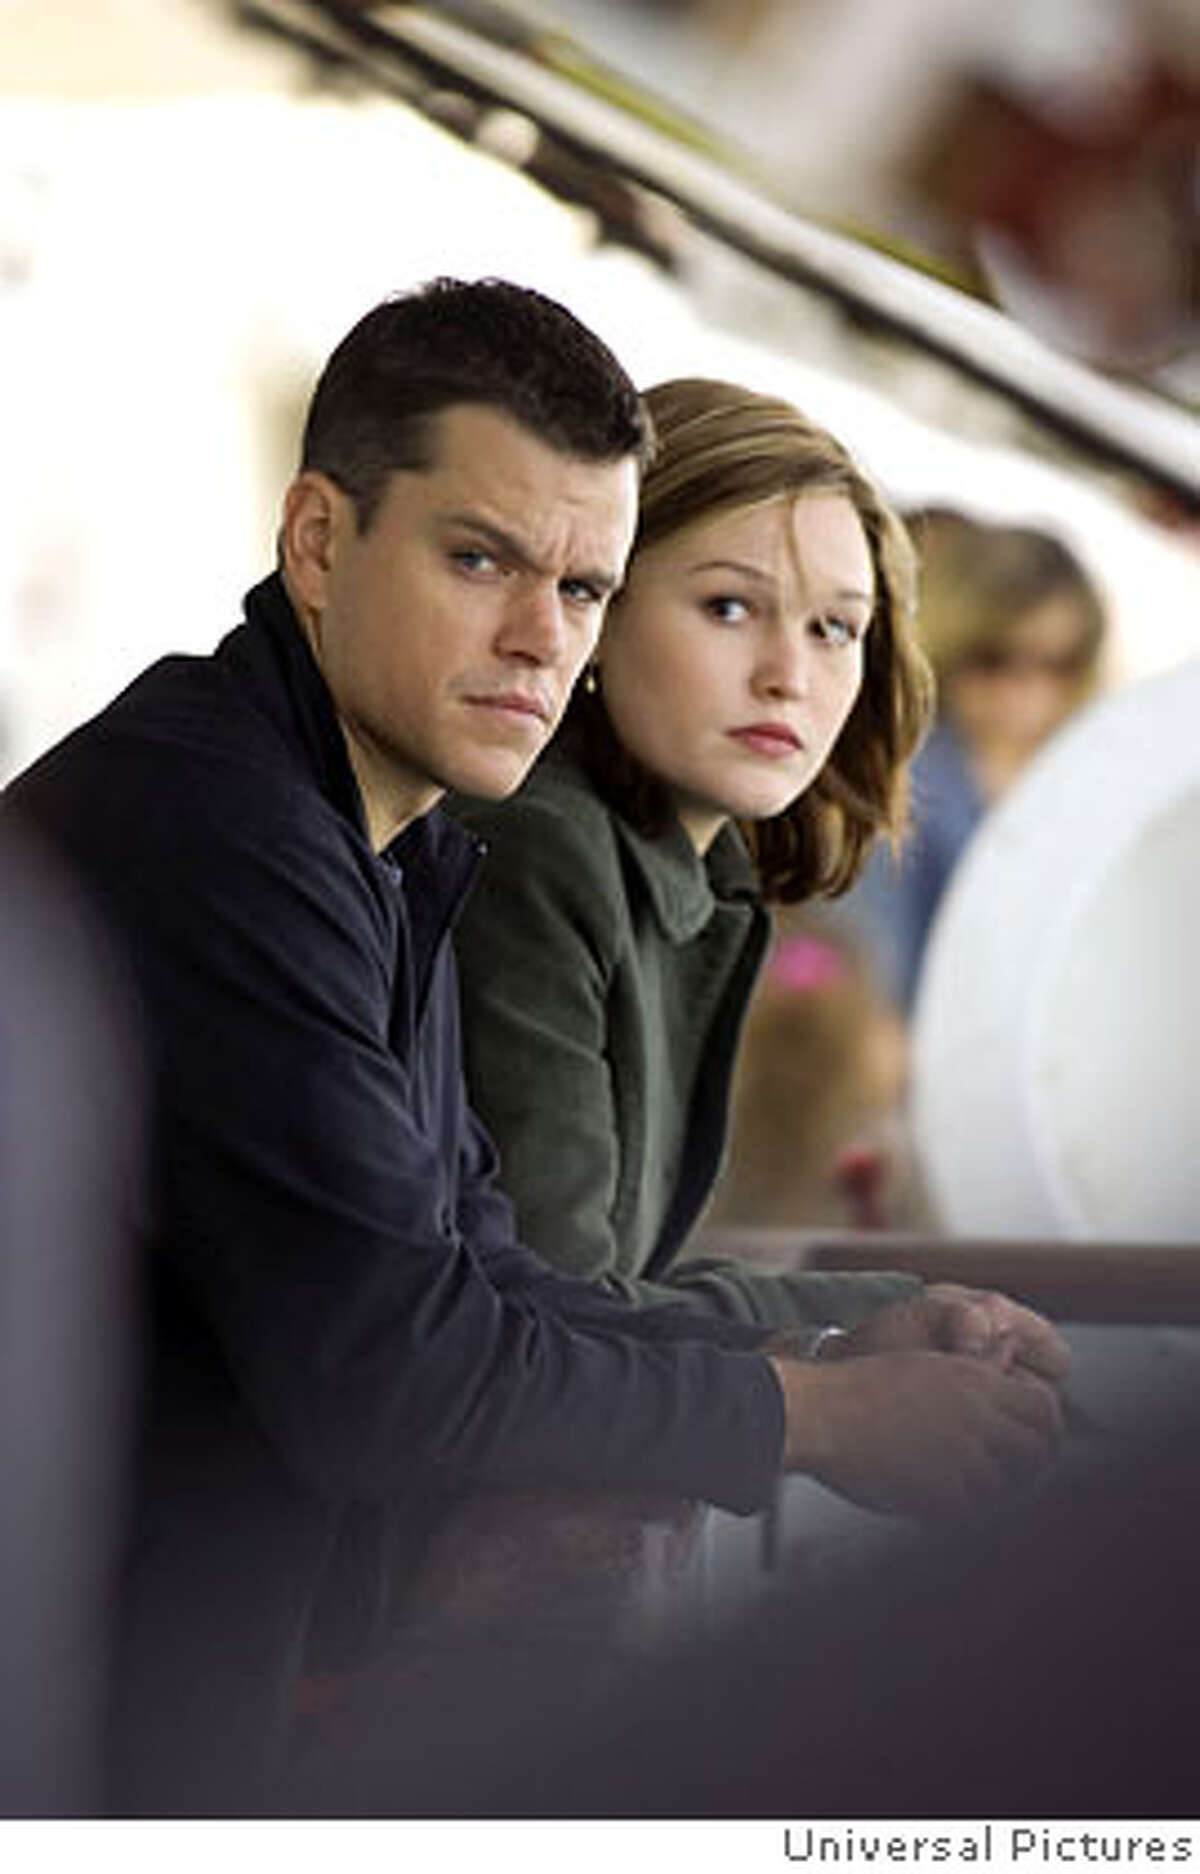 � Jason Bourne (MATT DAMON) and CIA agent Nicky Parsons (JULIA STILES) on the run in the espionage thriller that takes Bourne back home: ?The Bourne Ultimatum?.